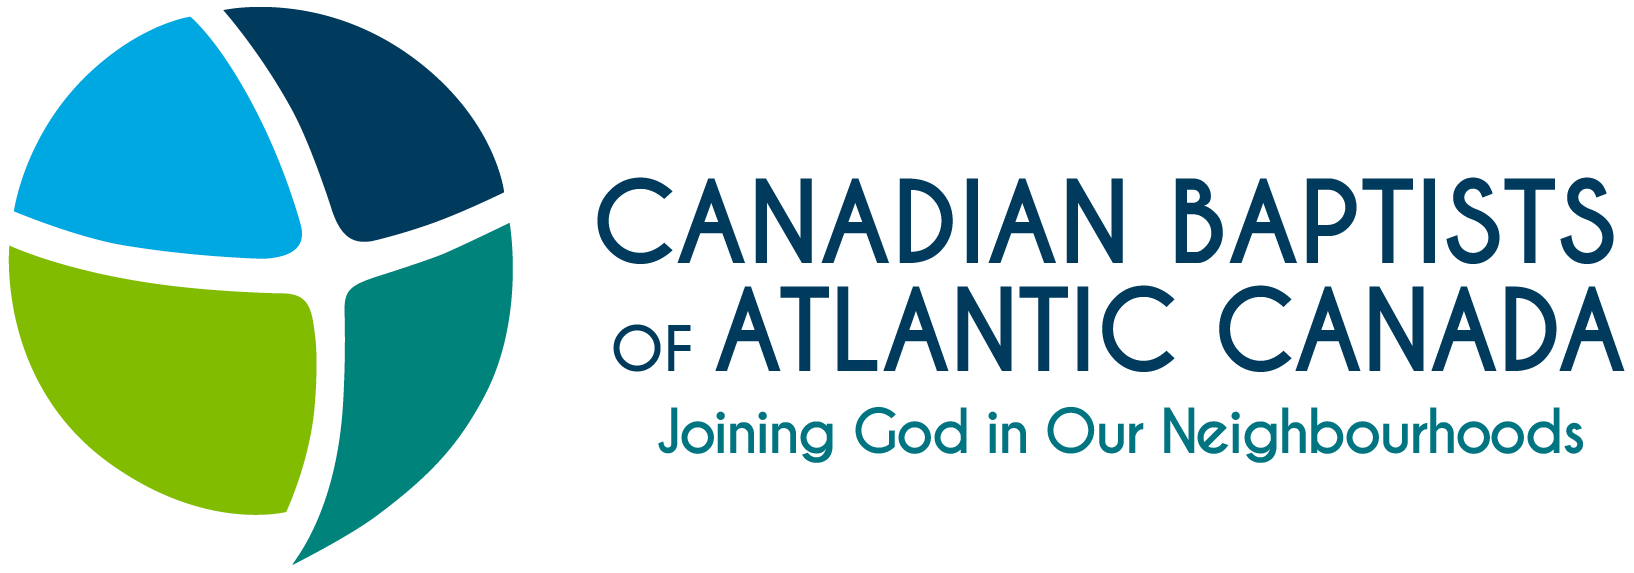 Ministry Opportunities - Canadian Baptists of Atlantic Canada